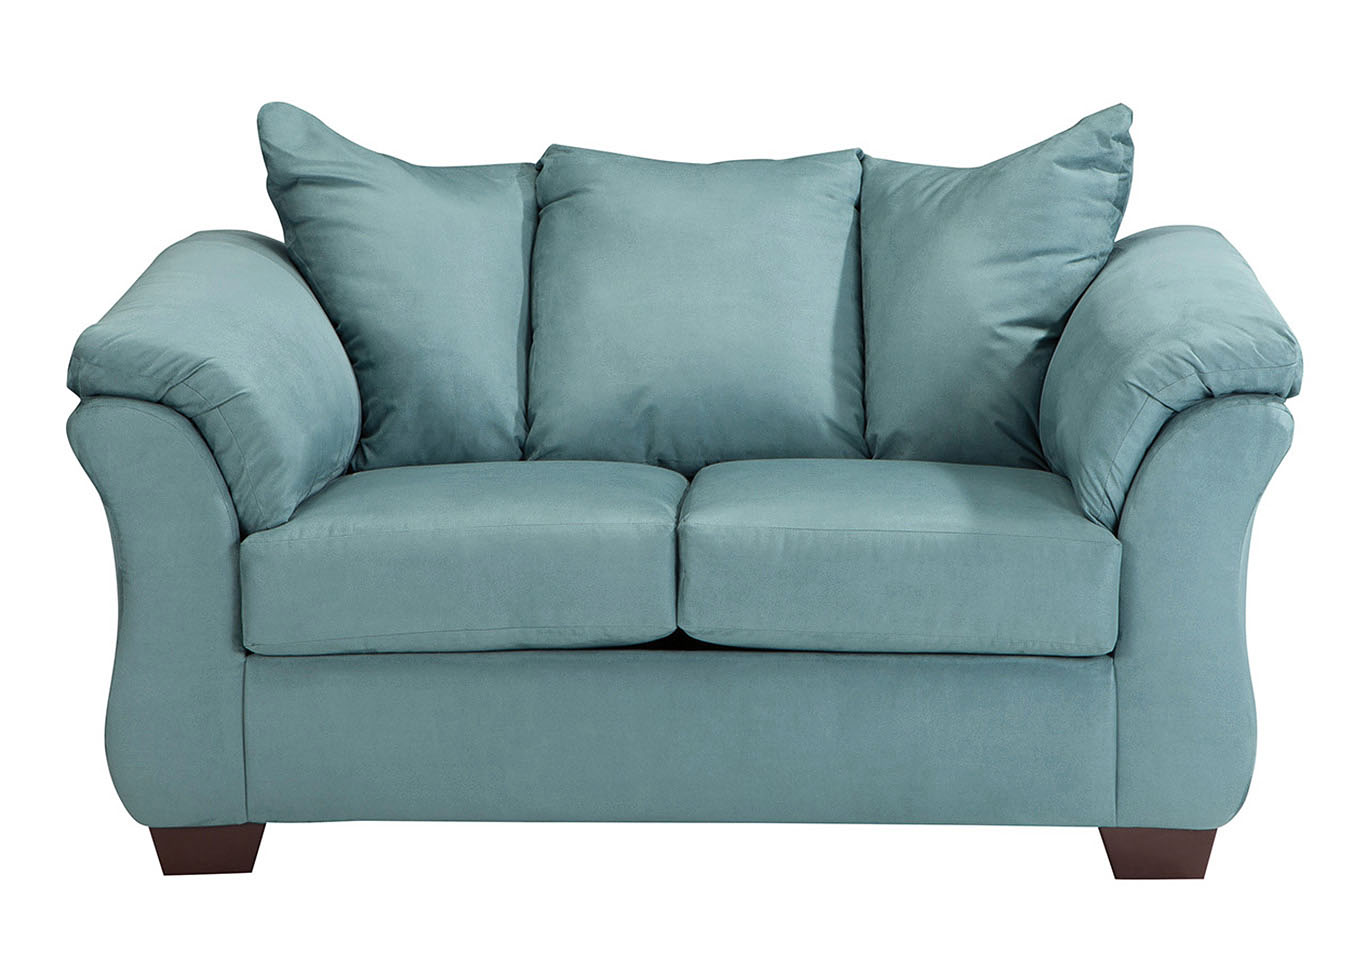 Darcy Sky Loveseat,ABF Signature Design by Ashley